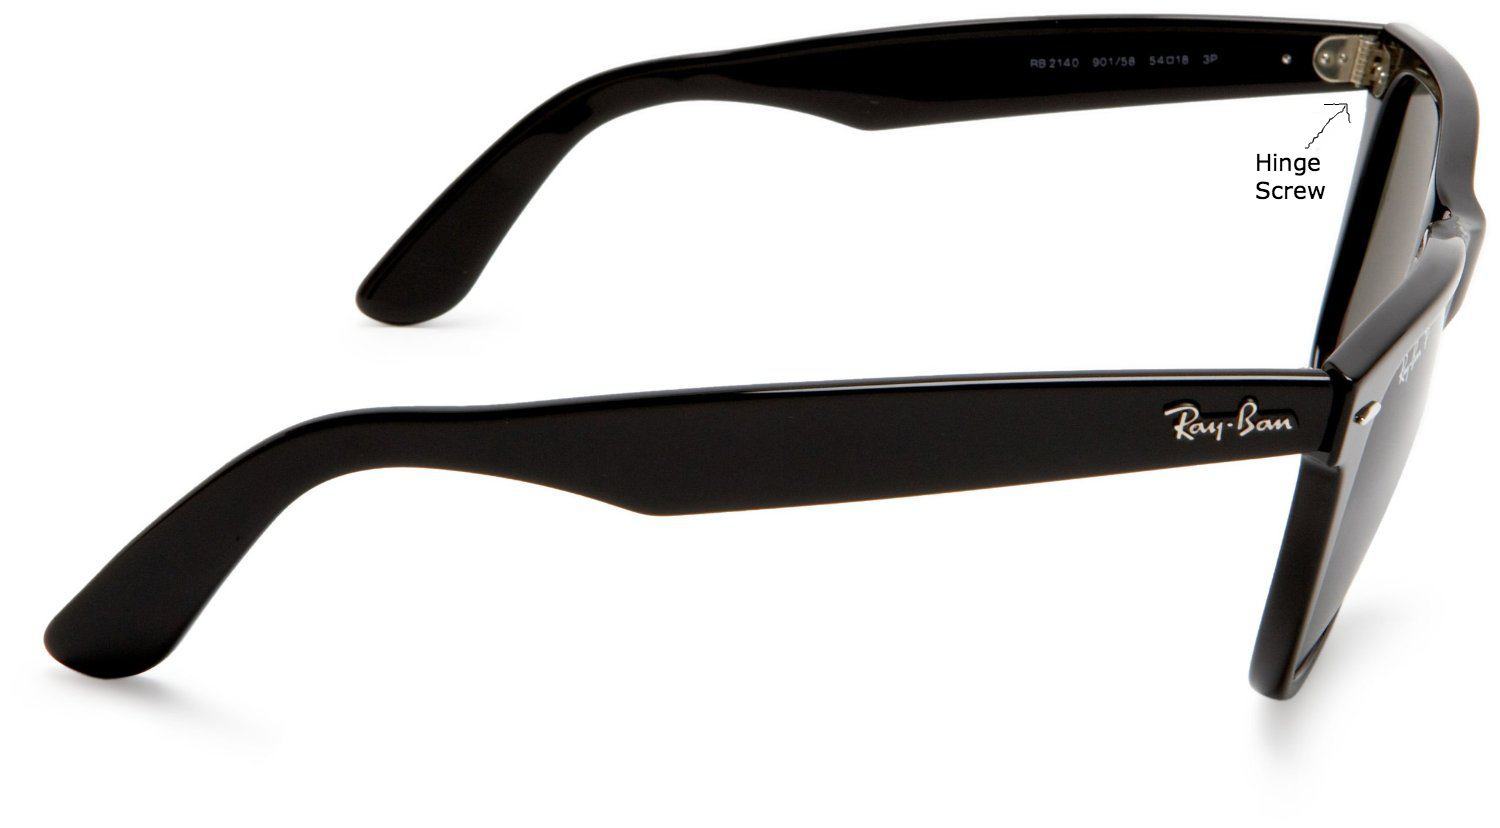 Ray ban sunglasses spare parts -